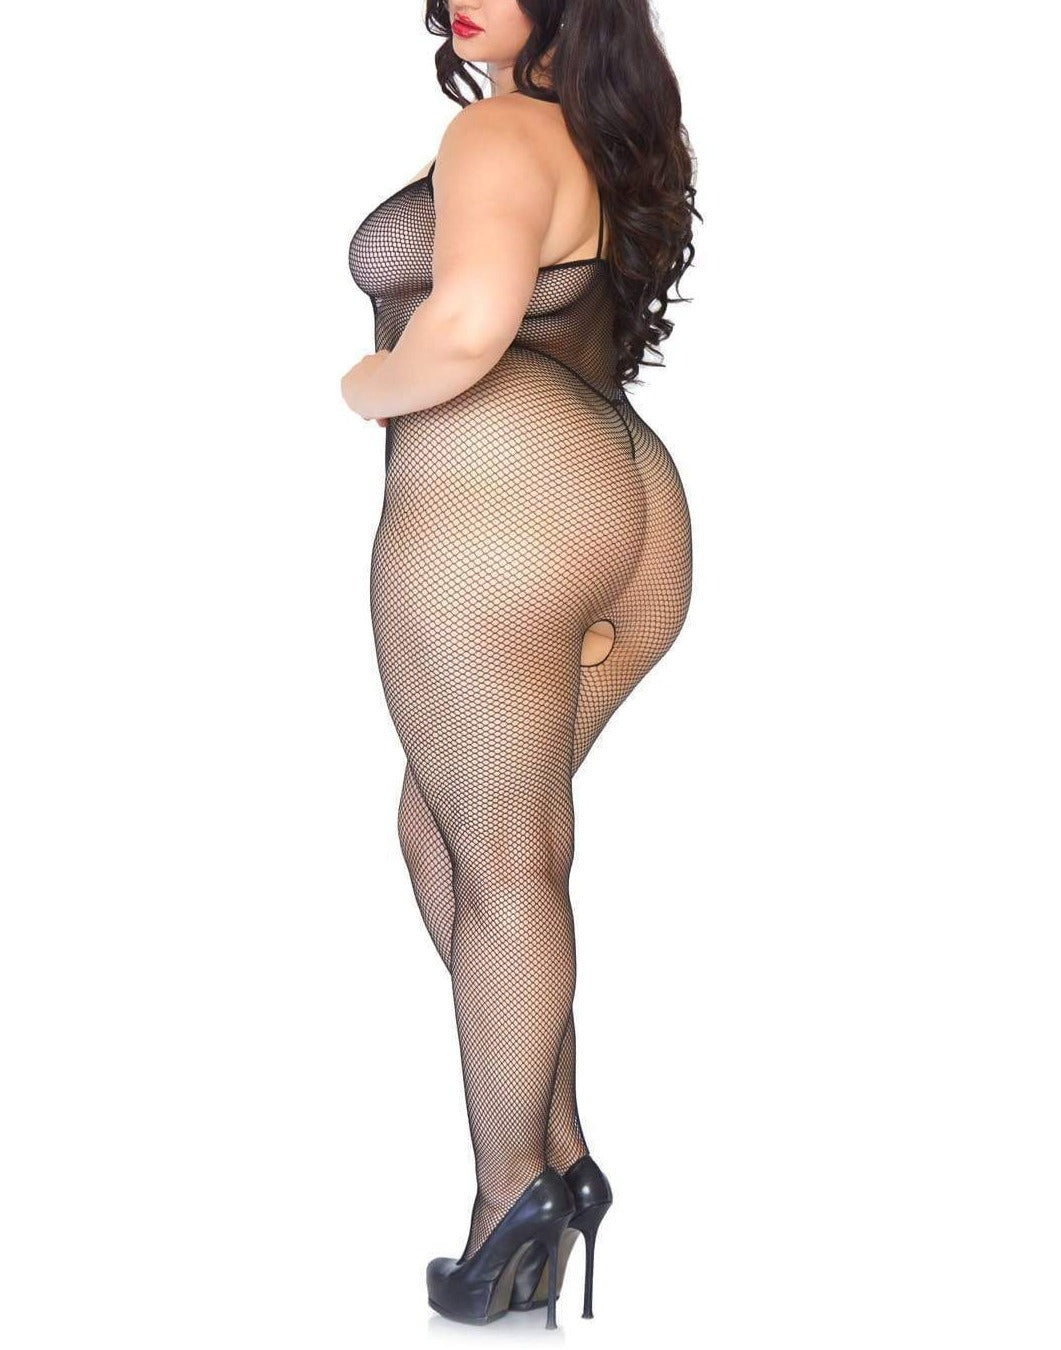 Cora Fishnet Bodystocking - Made For Curves